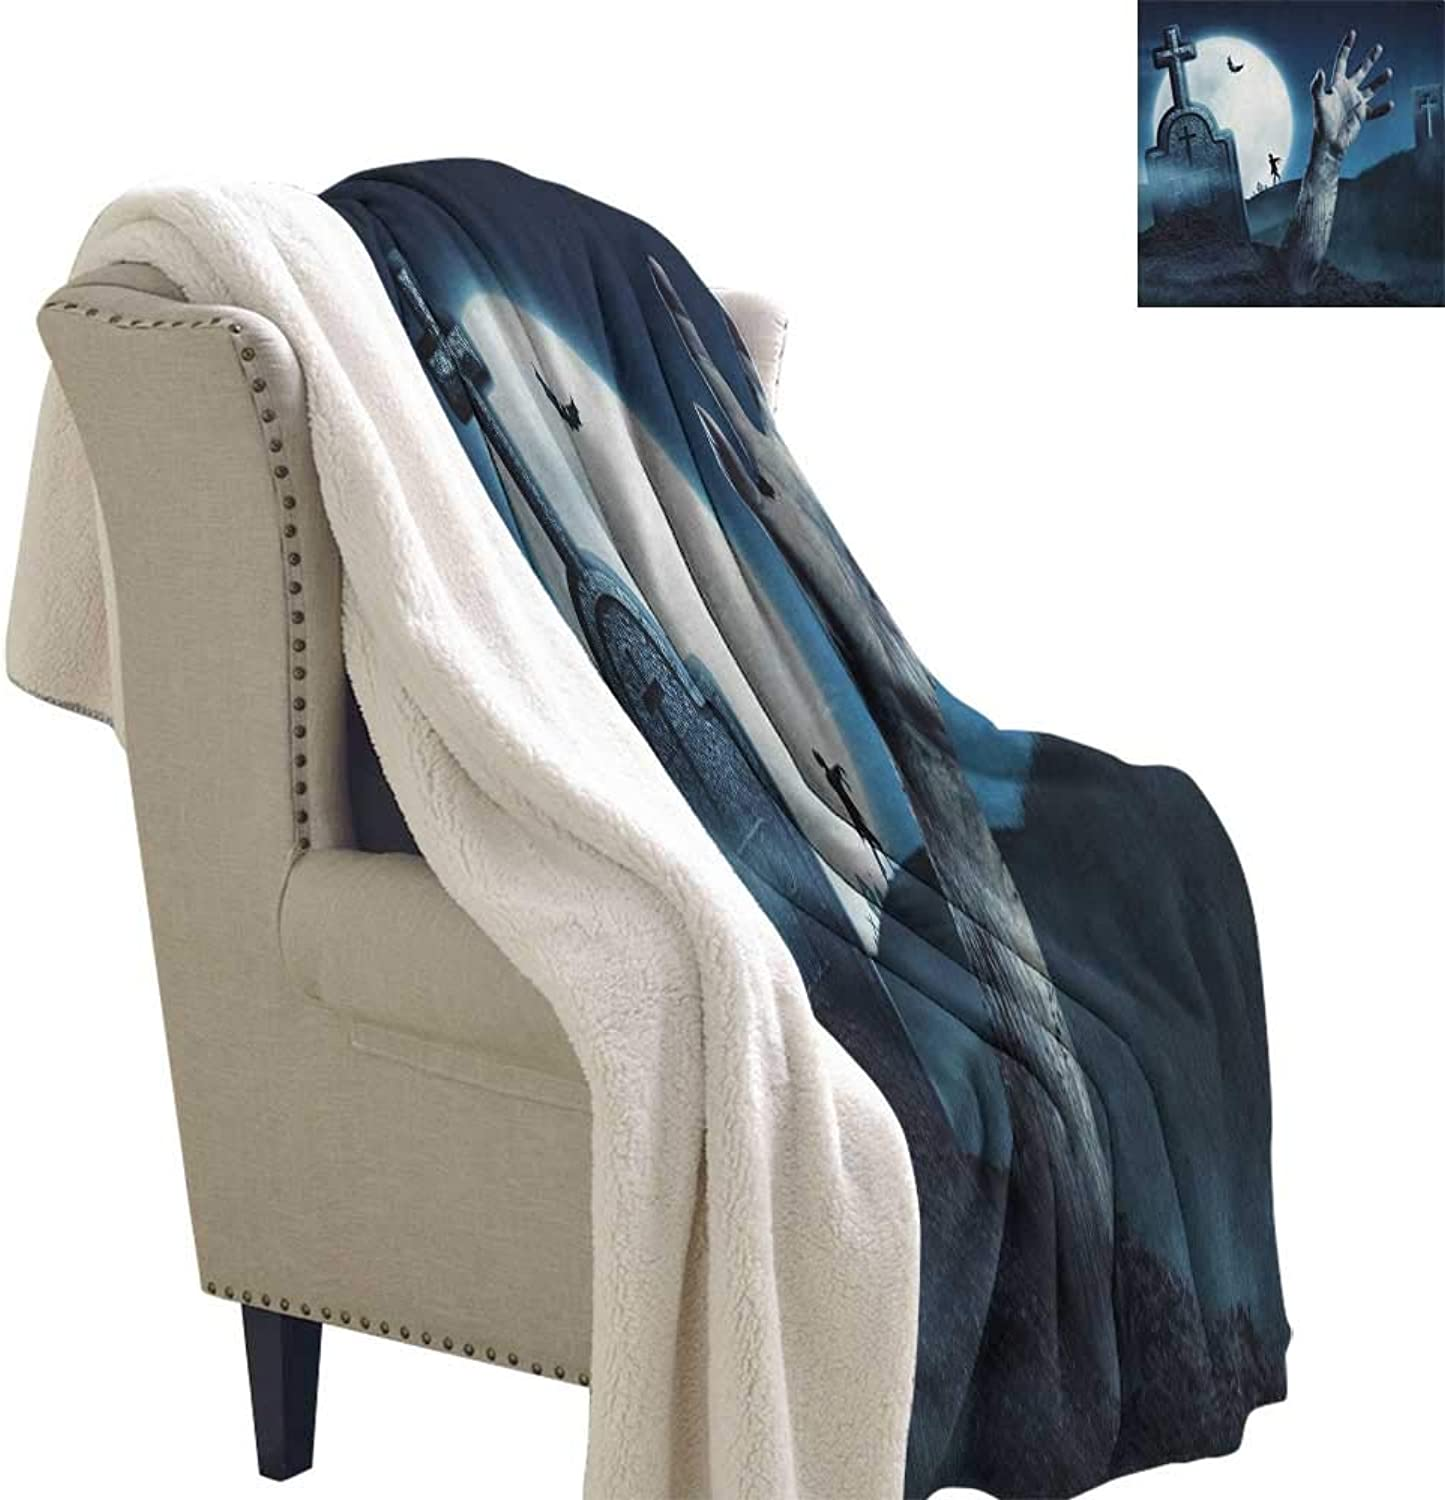 Suchashome Zombie Soft Premium Cotton Thermal Blanket Dead Person Arm Cemetery Bat Flying Full Moon Ghost Devil Illustration Design Blanket Small Quilt 60x32 Inch Slate bluee Grey